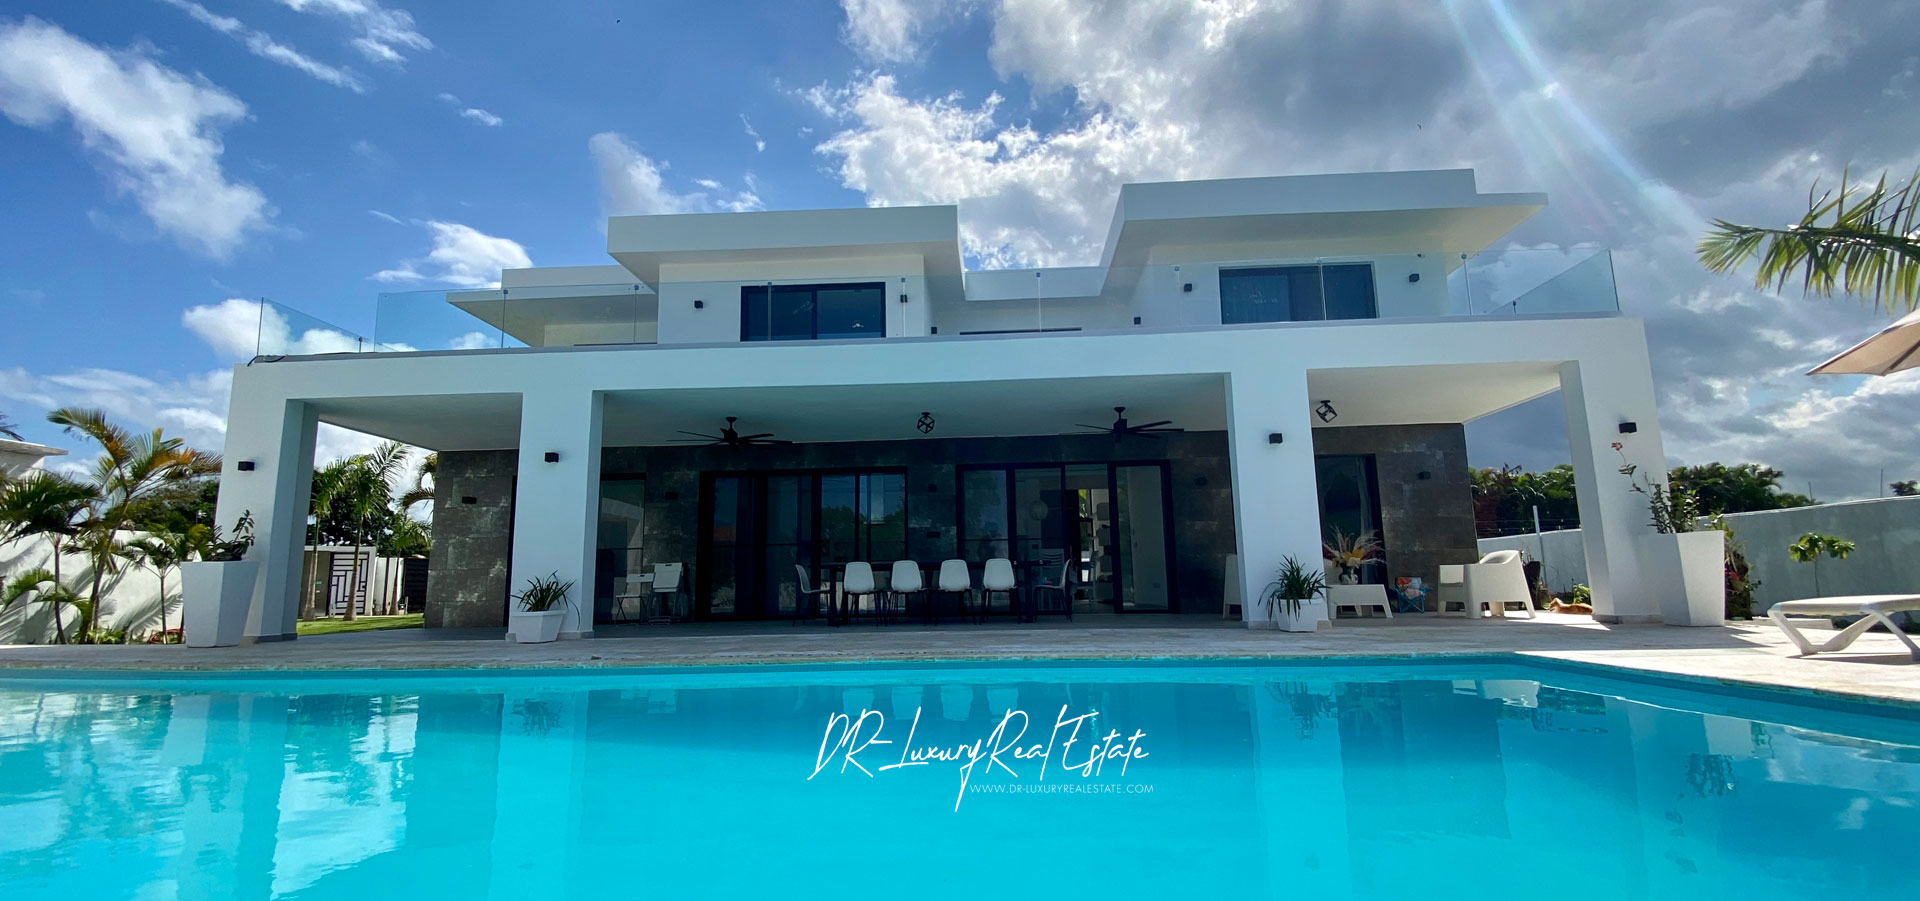 Modern Ocean view vi in the Dominican Republic